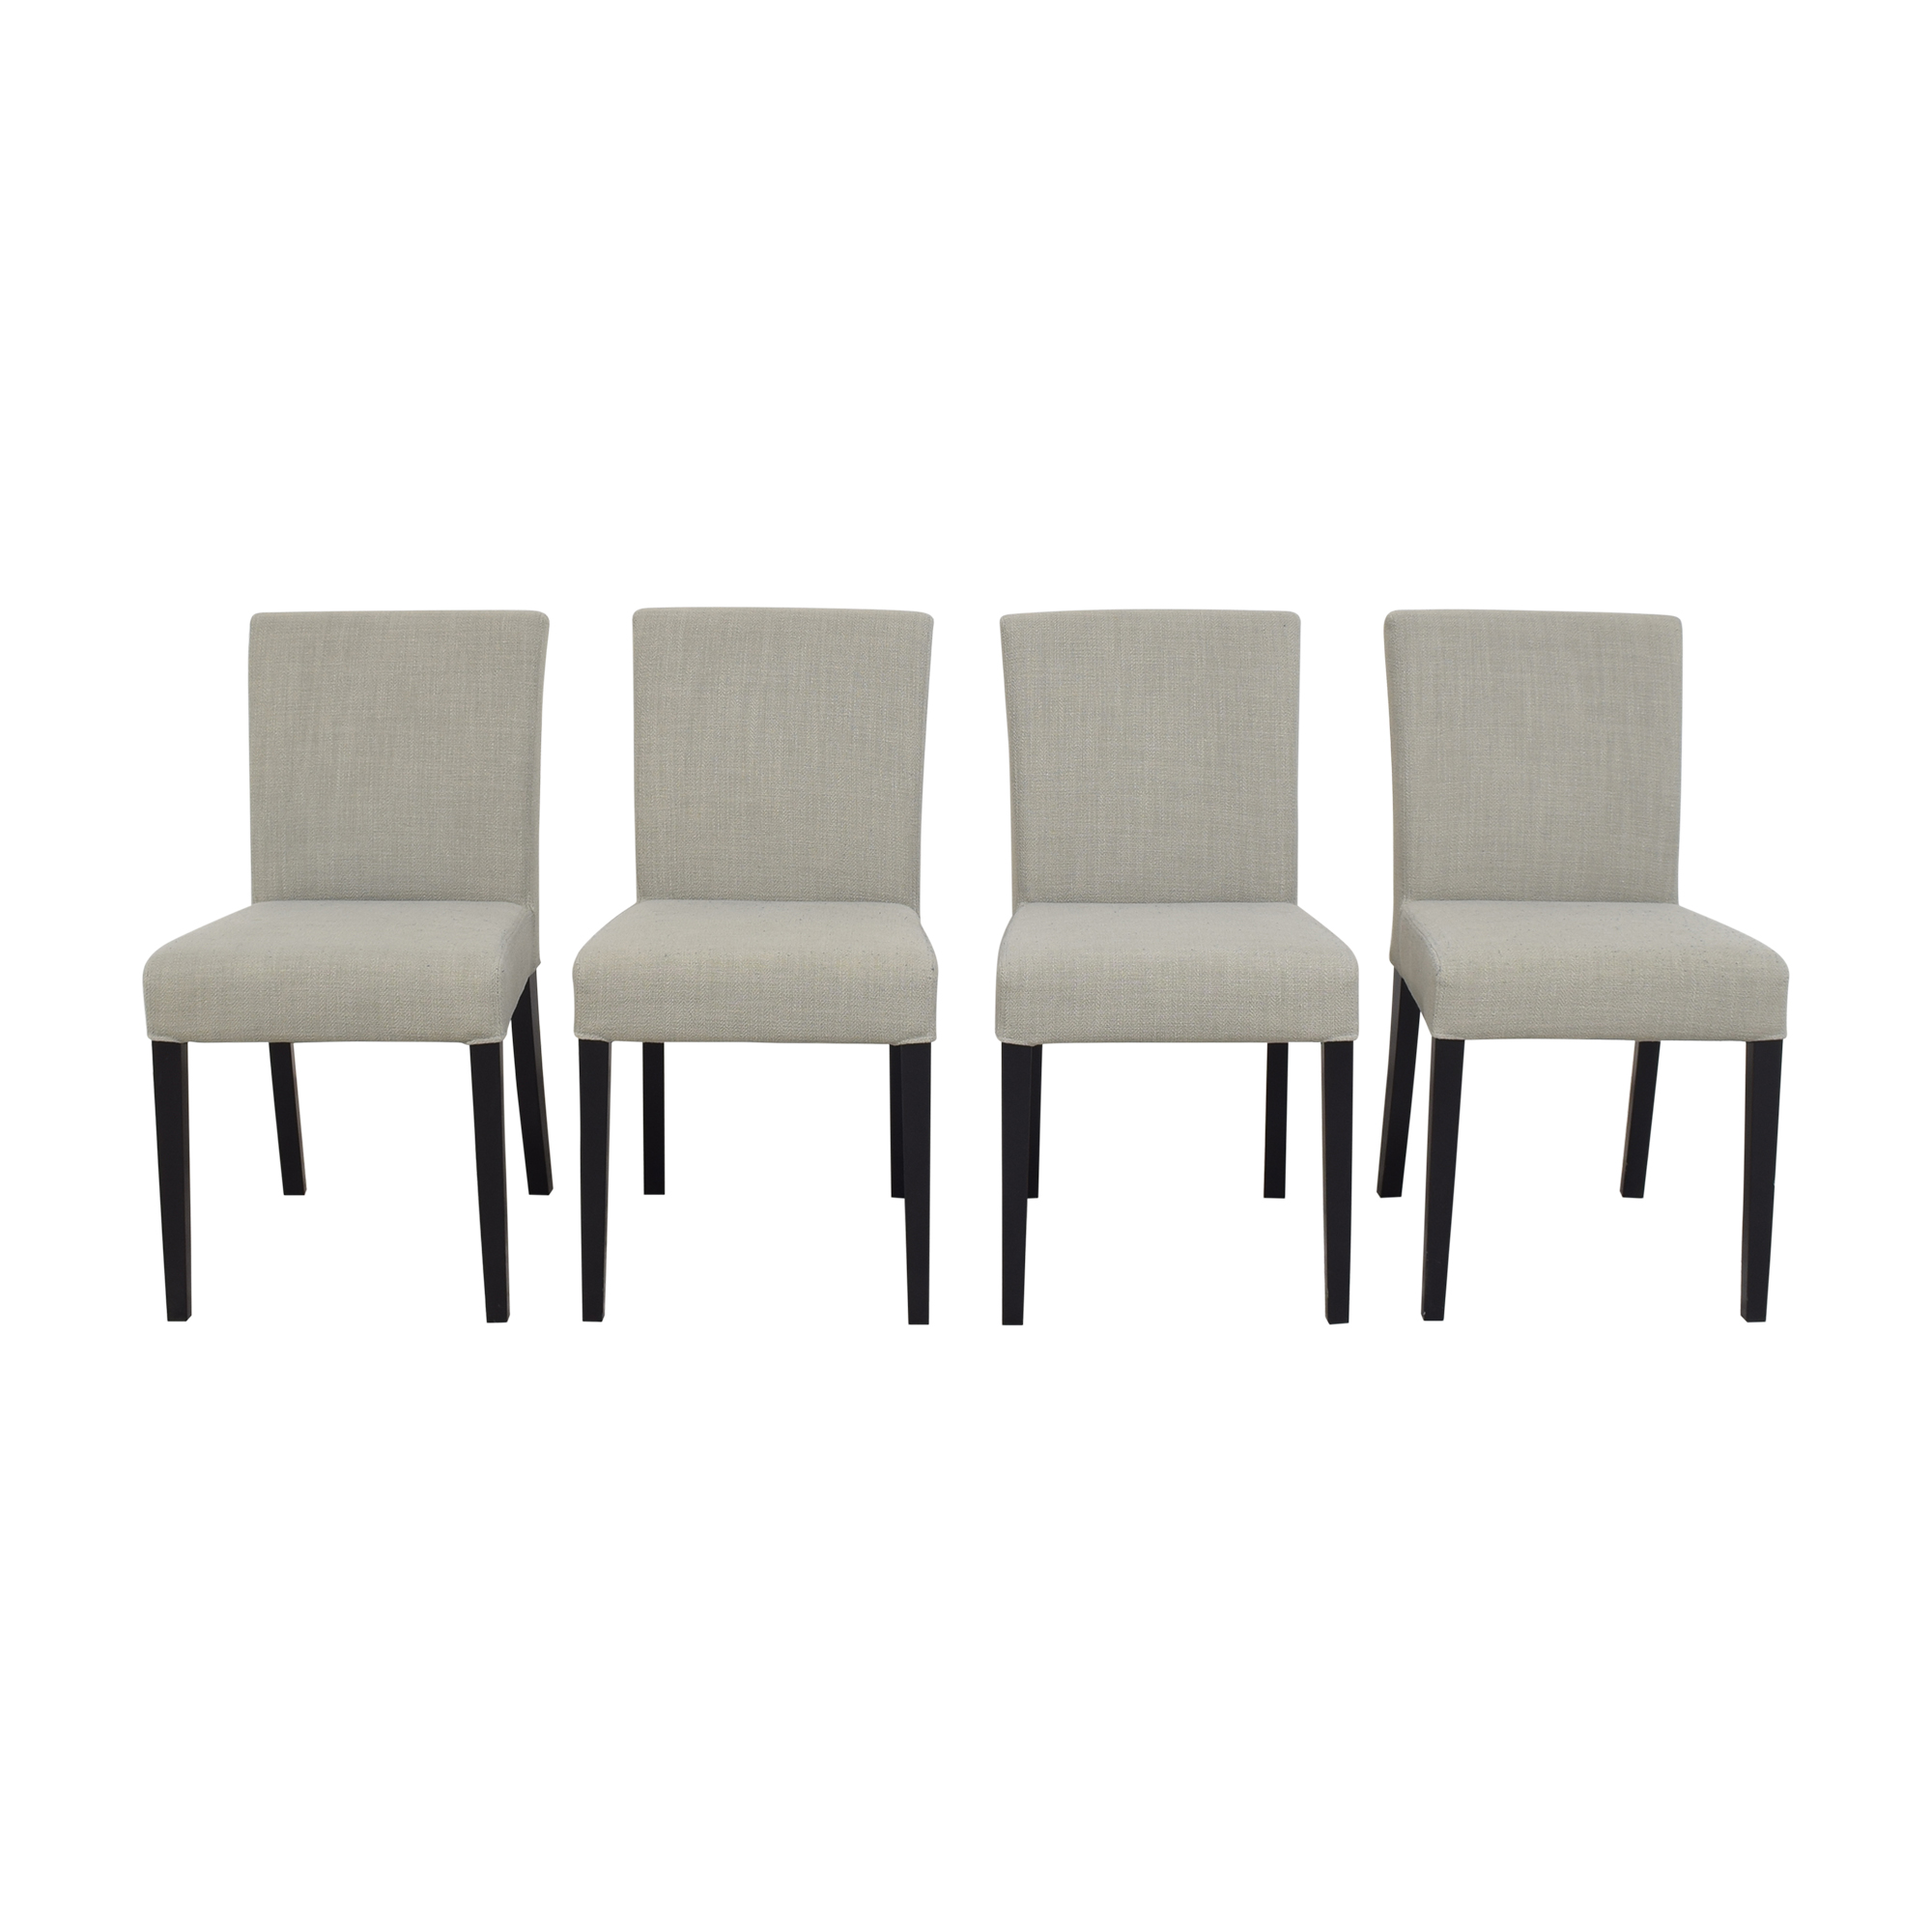 Crate & Barrel Crate & Barrel Miles Upholstered Dining Chairs ct